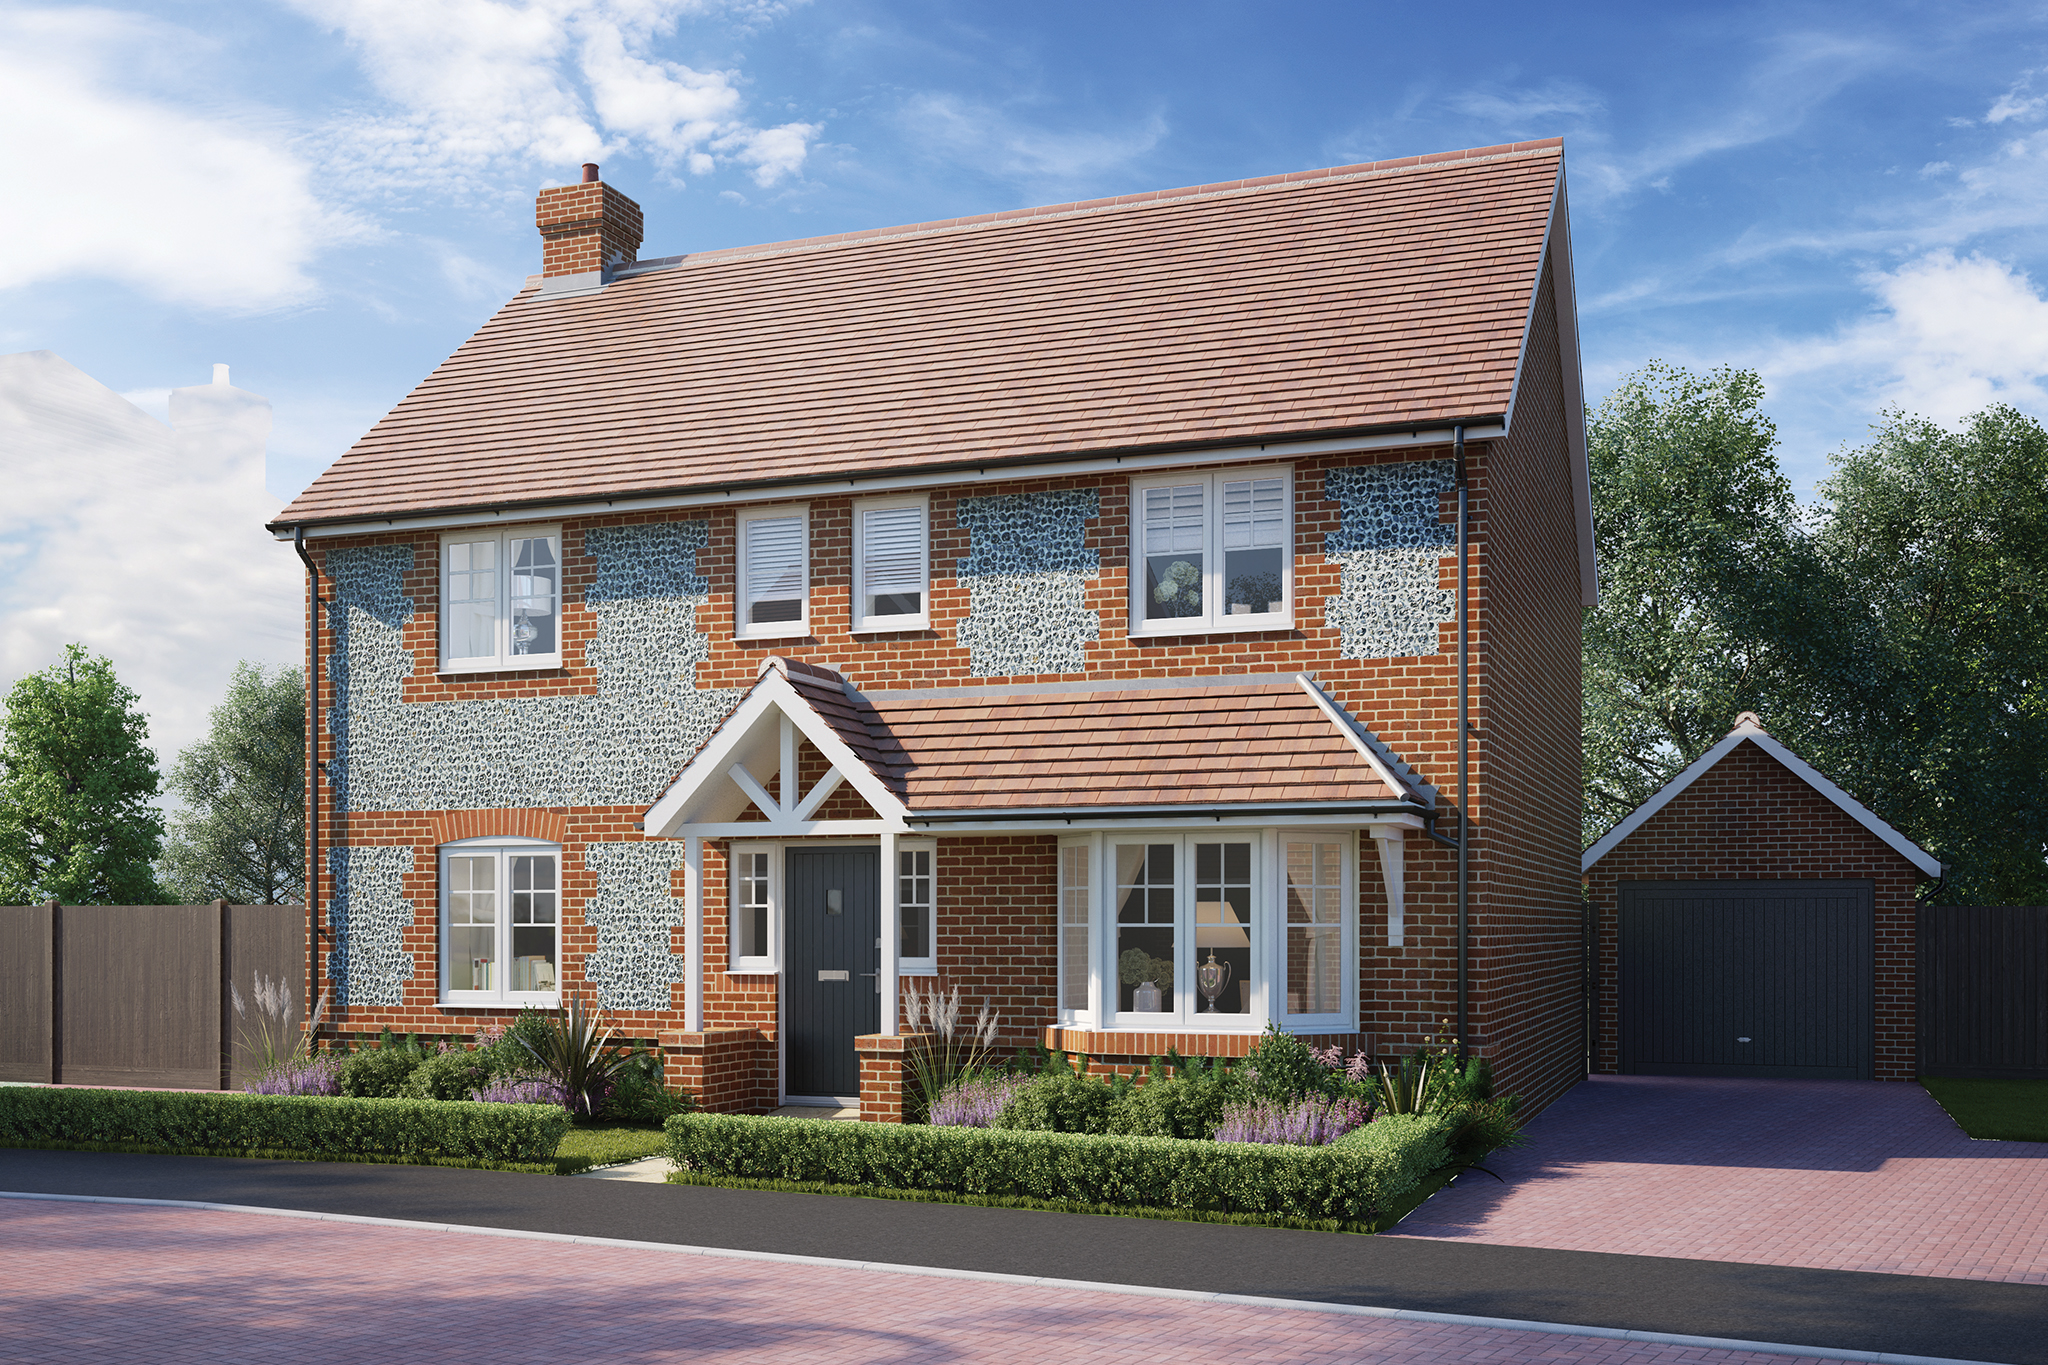 These 2, 3, 4 And 5 Bedroom Homes Covers A Range Of Semi Detached And  Detached House Styles, Certain To Appeal To First Time Buyers, Families And  Commuters.